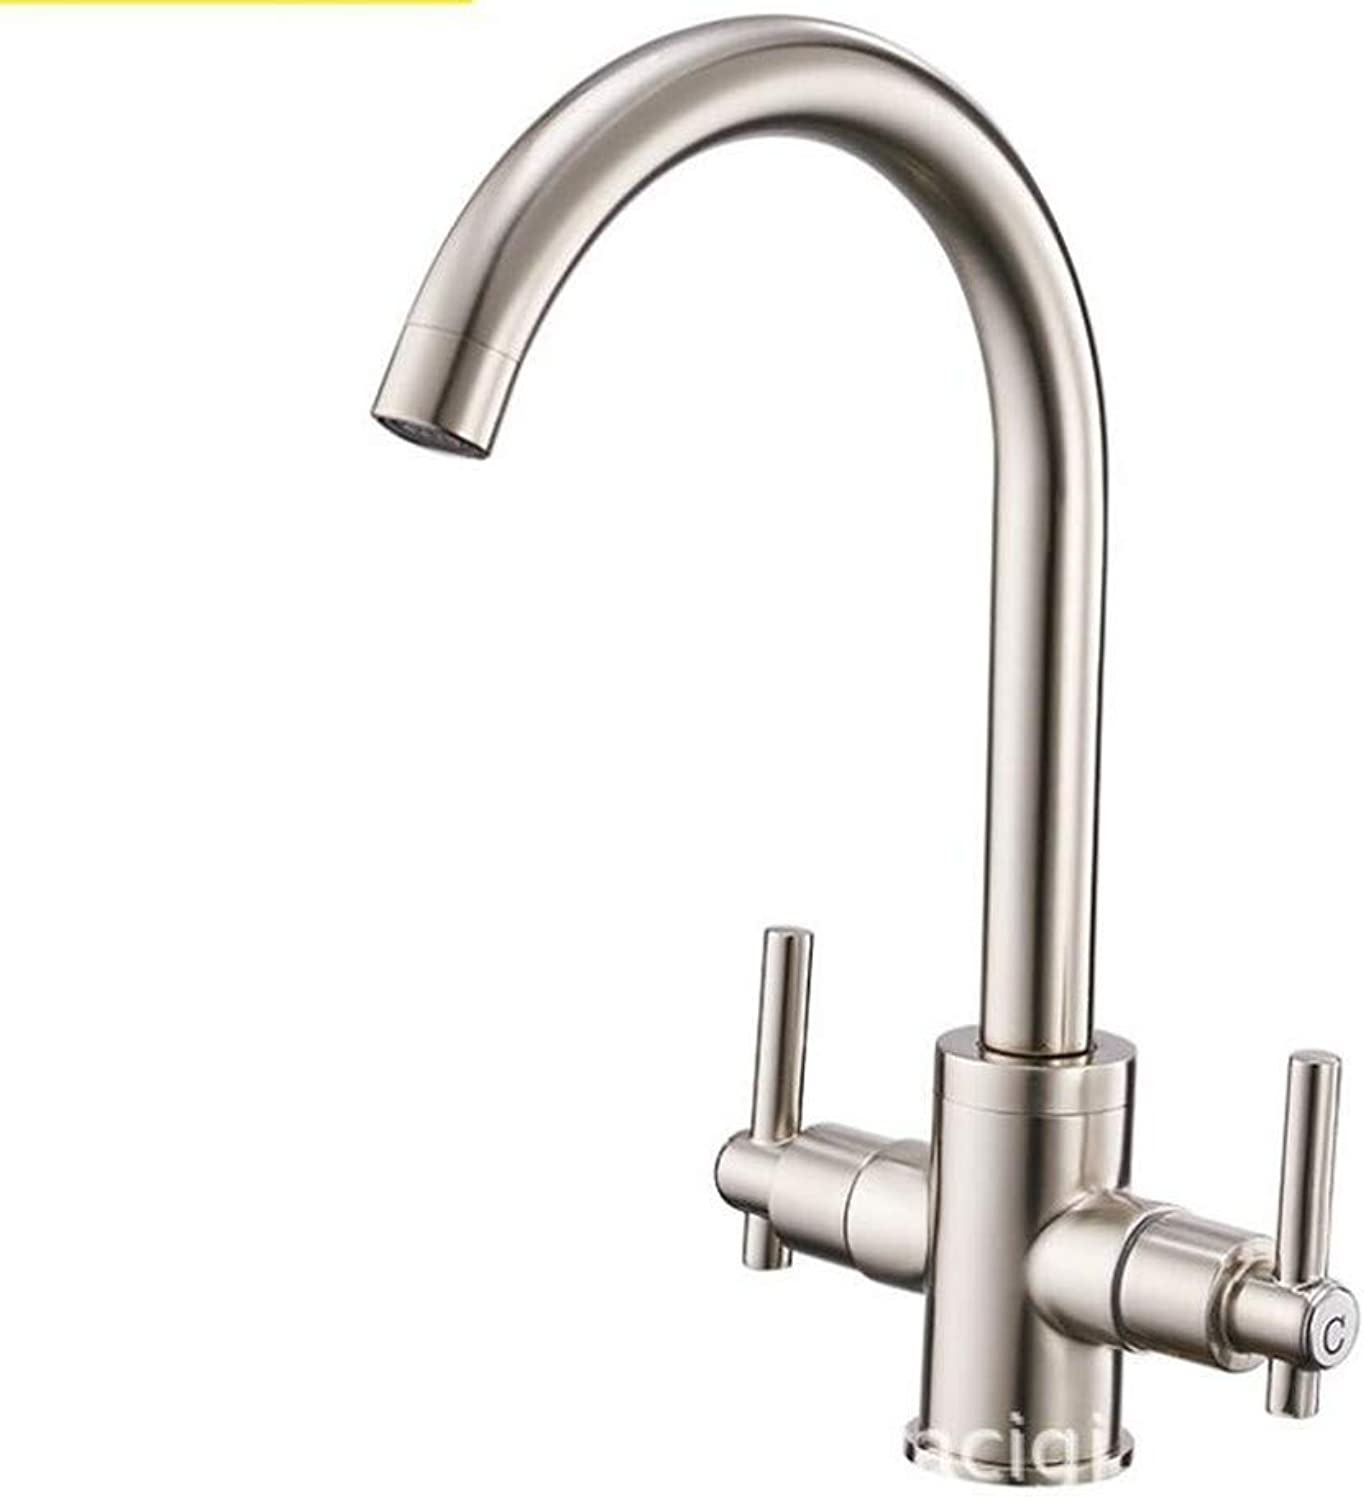 Bathroom Sink Basin Lever Mixer Tap New Double-Open Kitchen Cold and Hot Water Faucet Wire Drawing Sink Faucet